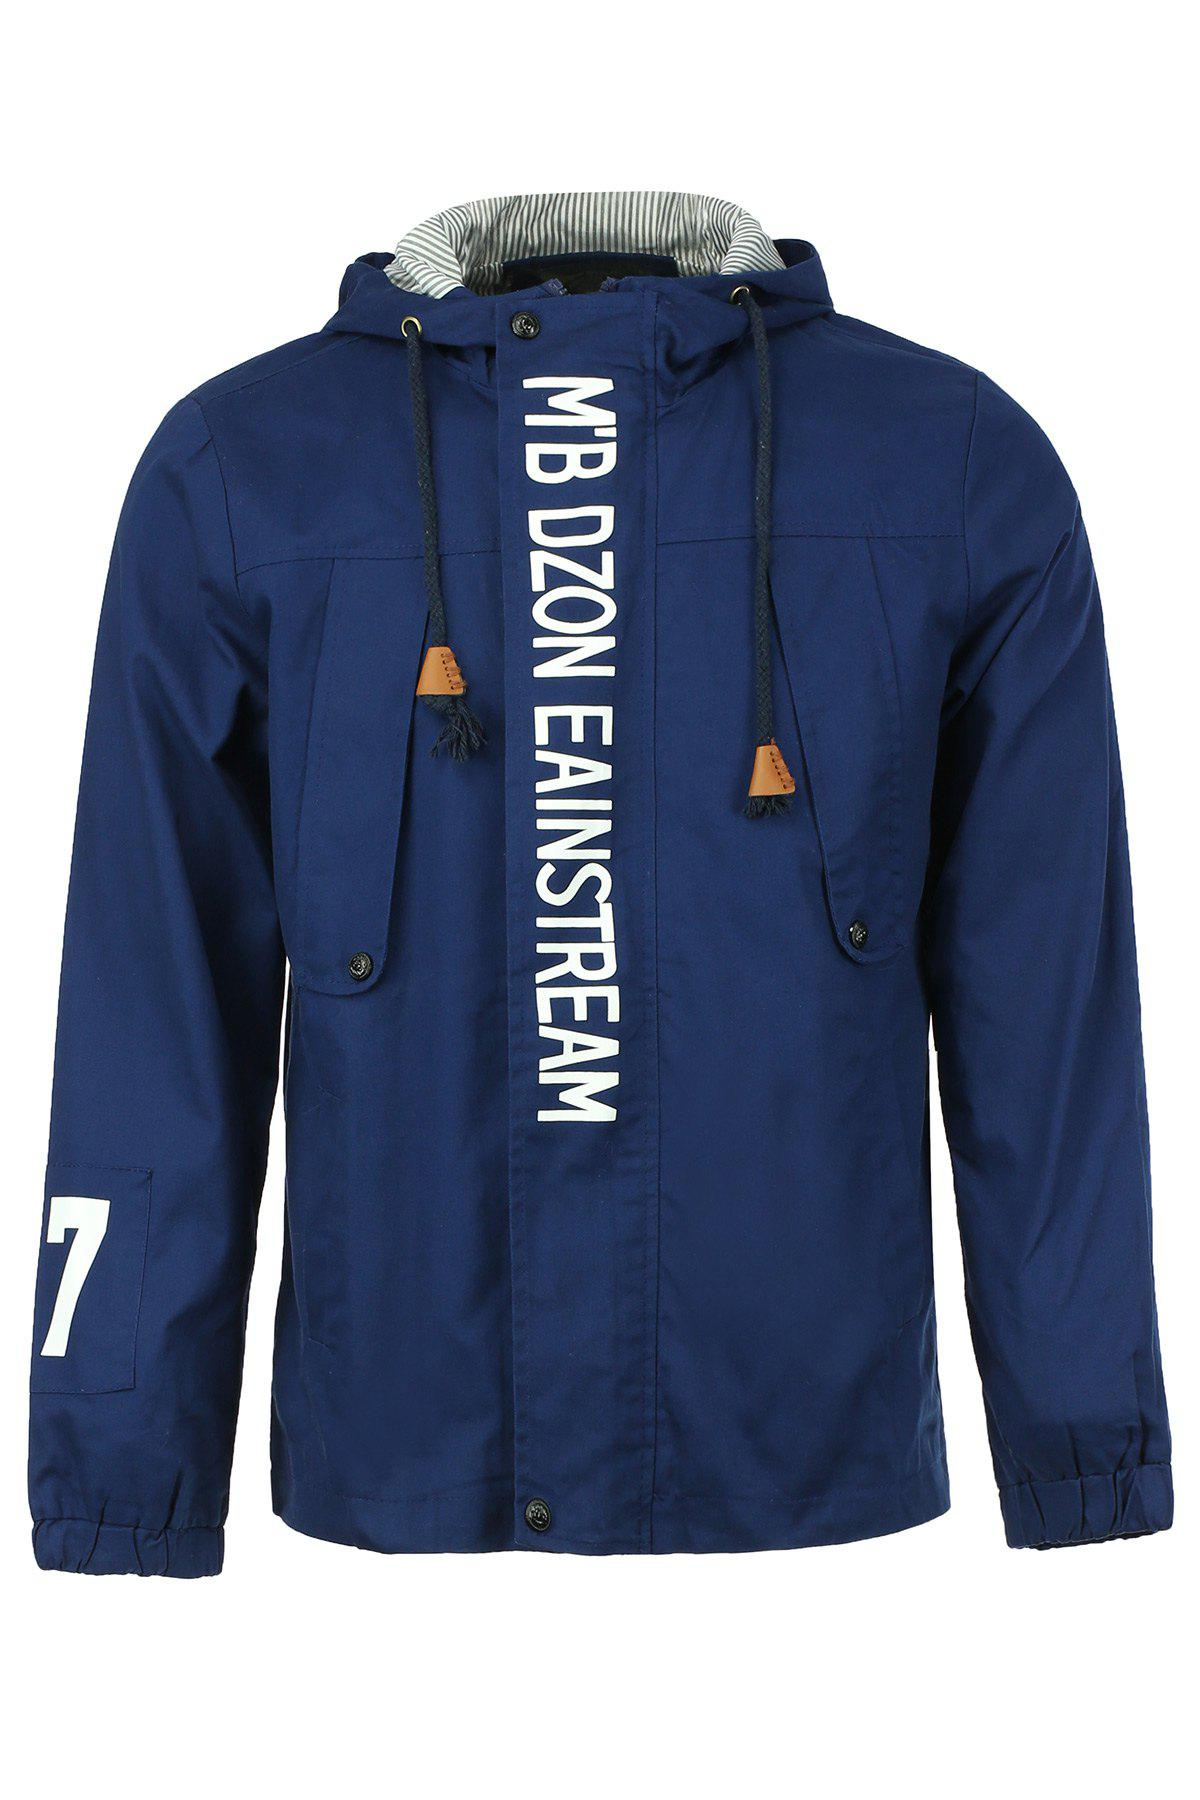 Modish Drawstring Letters Pattern Elastic Cuffs Long Sleeve Men's Jacket - CADETBLUE M